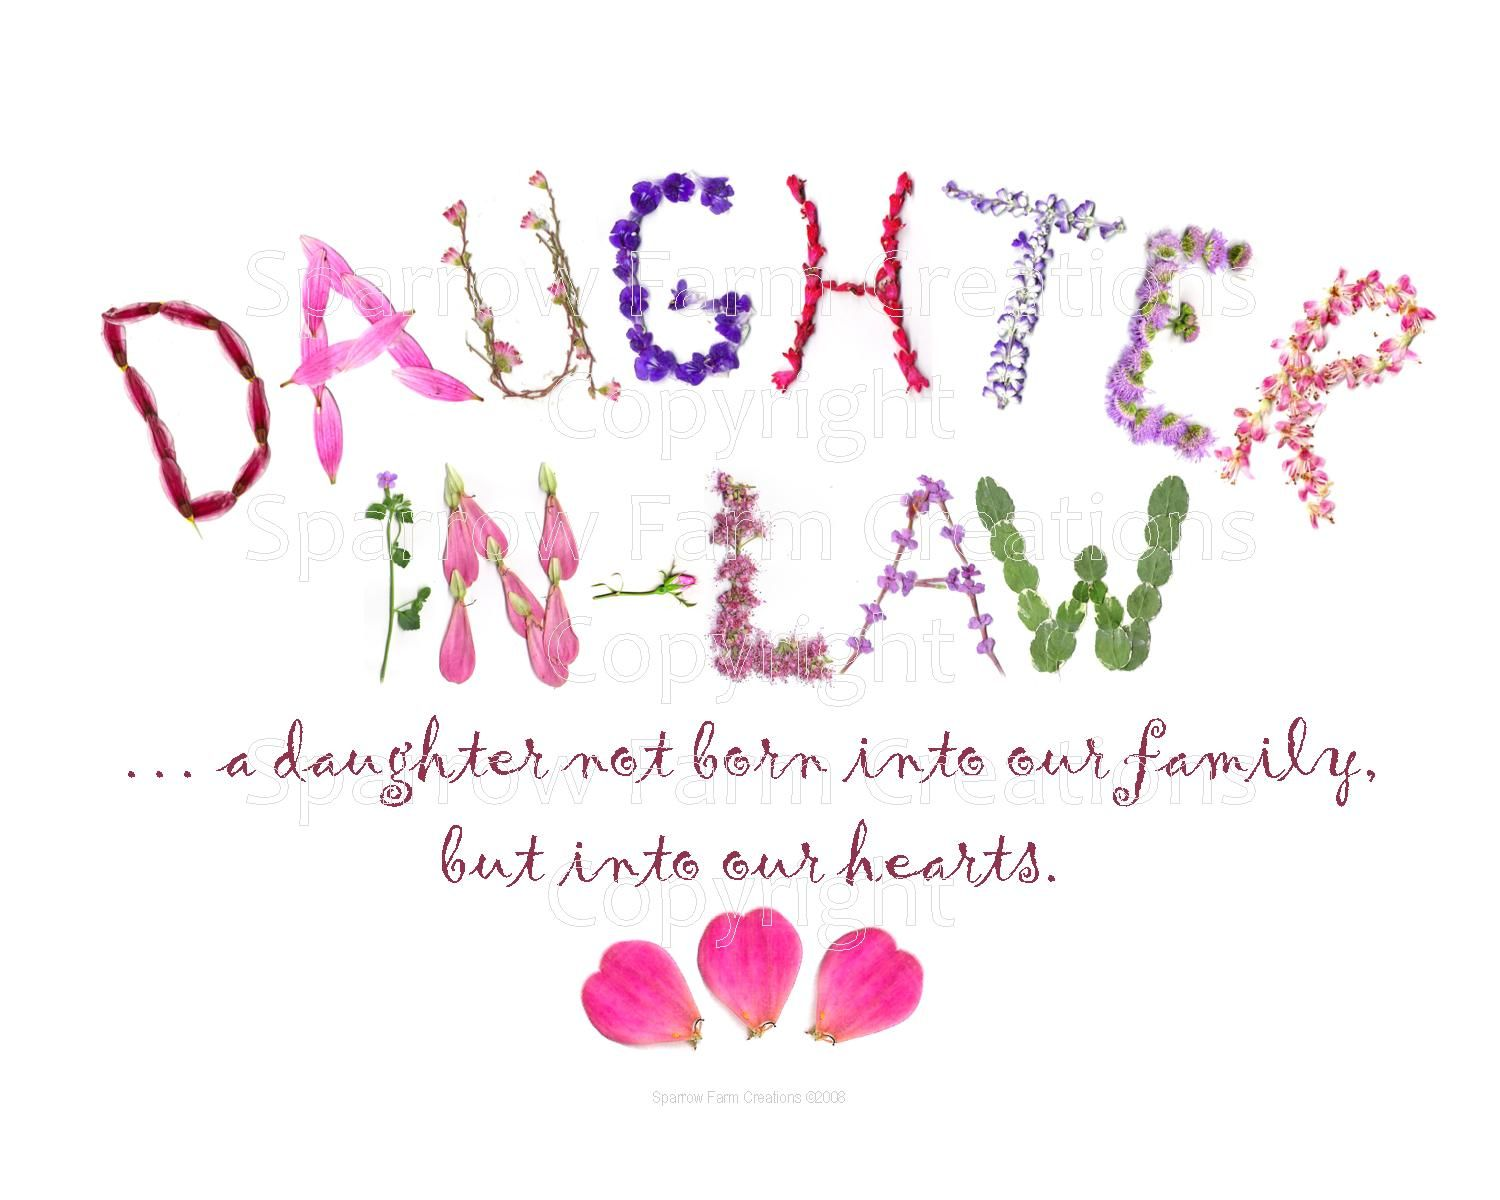 a daughter in law is quotes Google Search Birthday